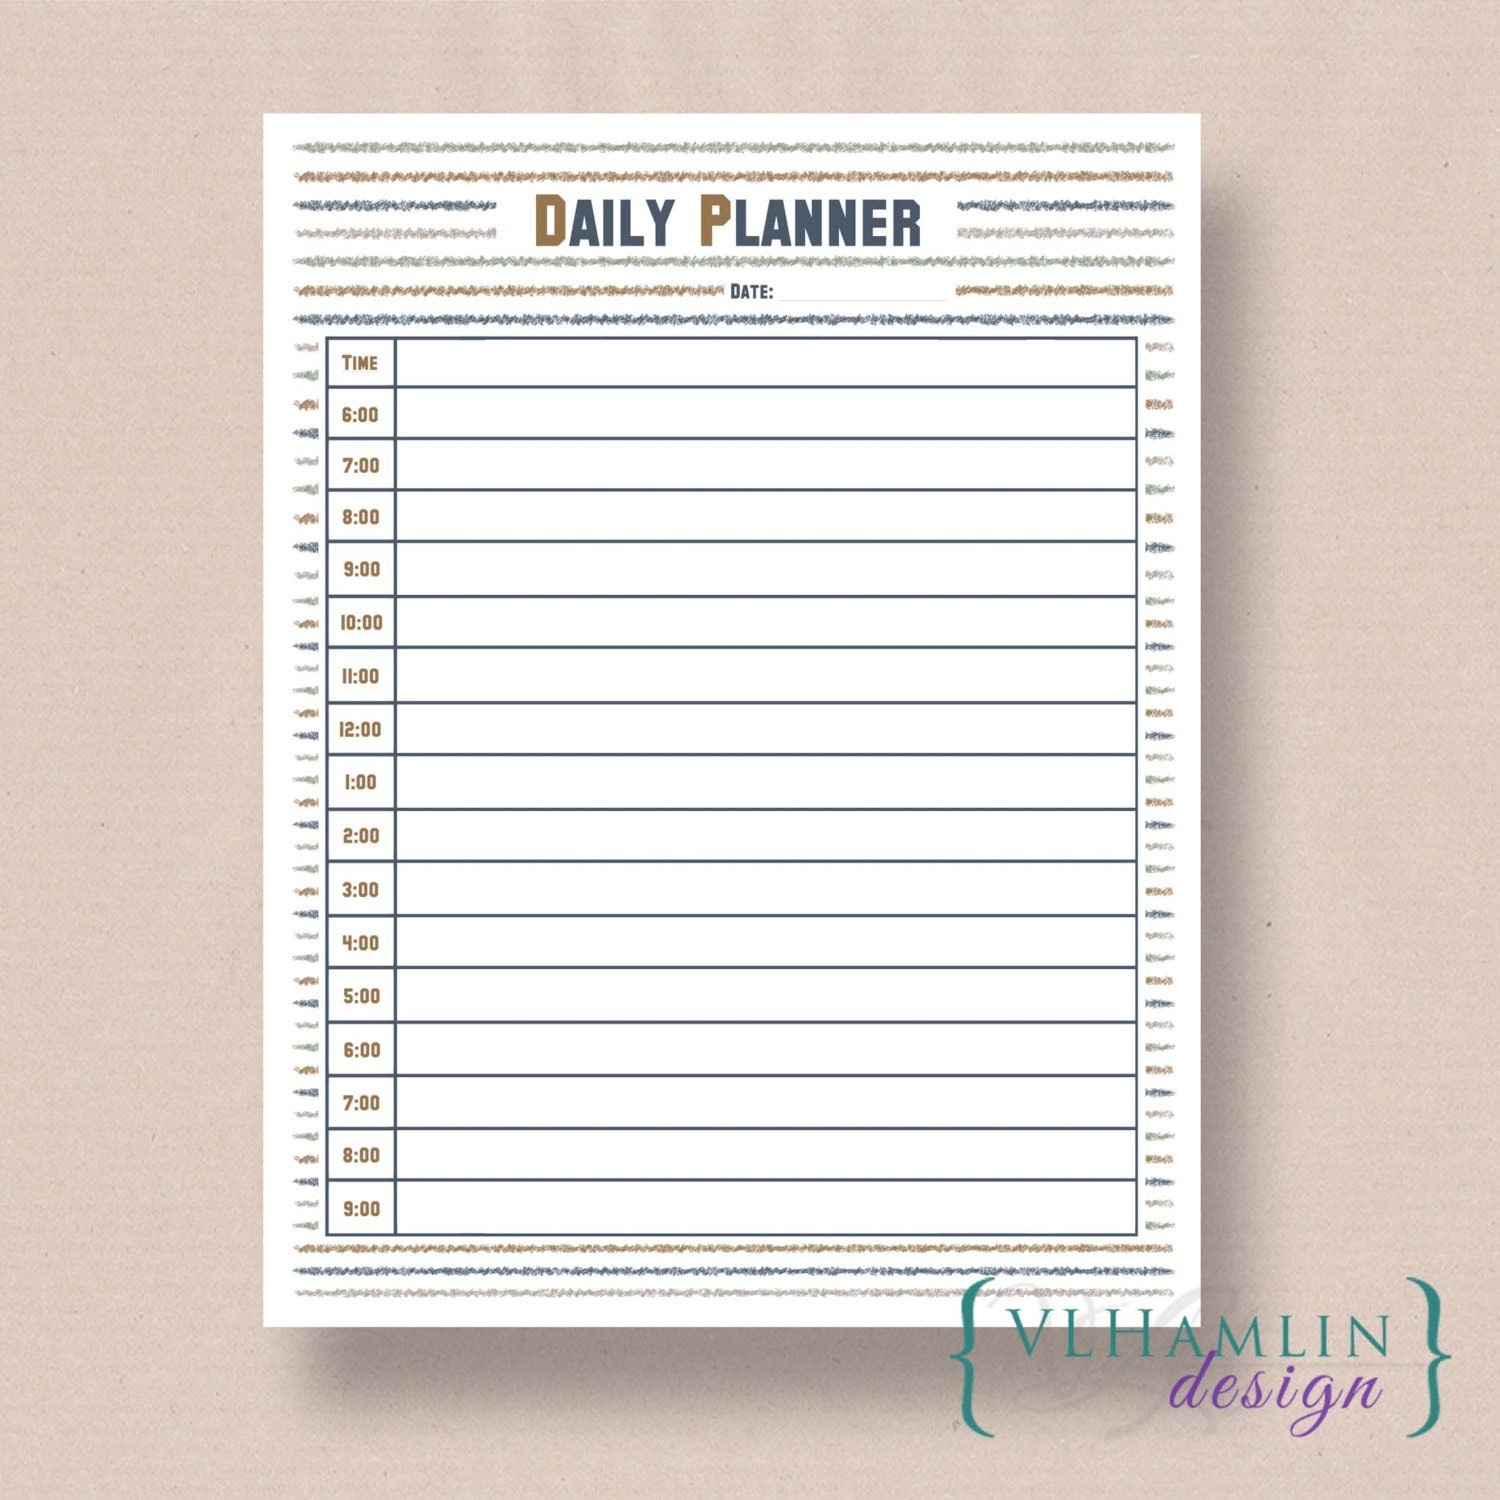 SALE Daily Planner Printable Daily Planner Meal Planner | Etsy